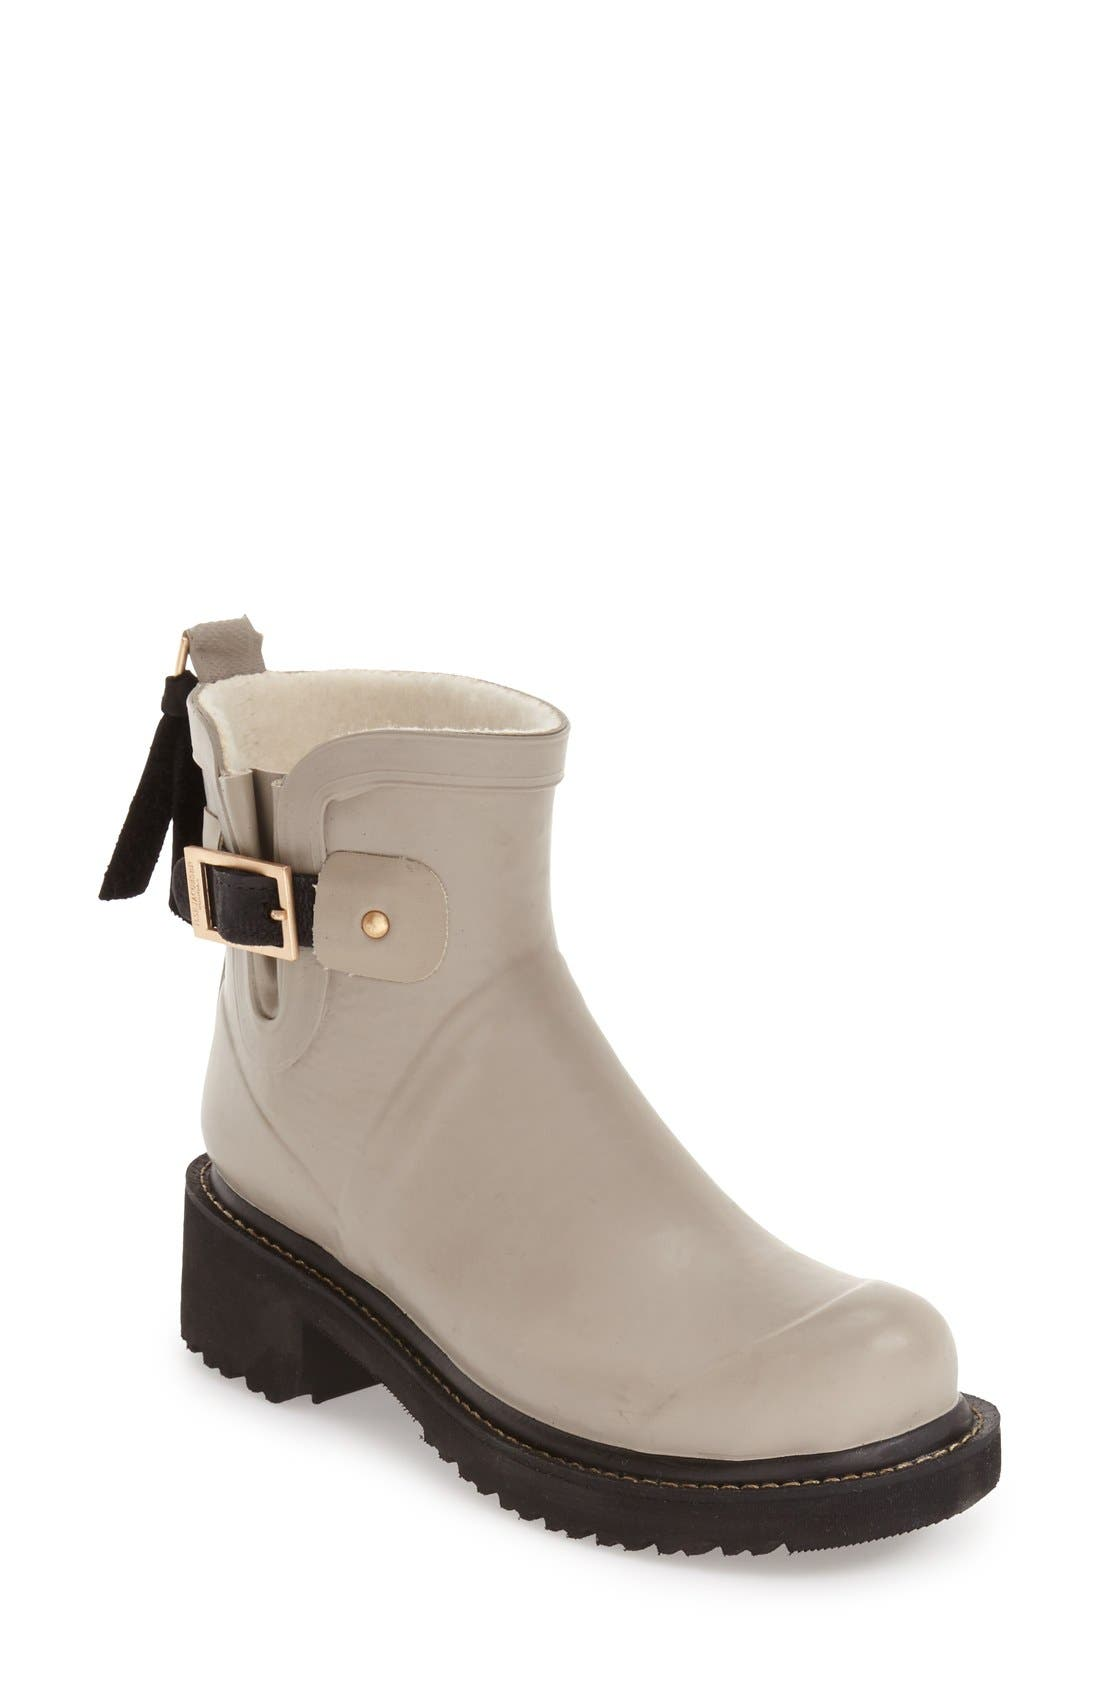 ILSE JACOBSEN Short Waterproof Rubber Boot in Atmosphere